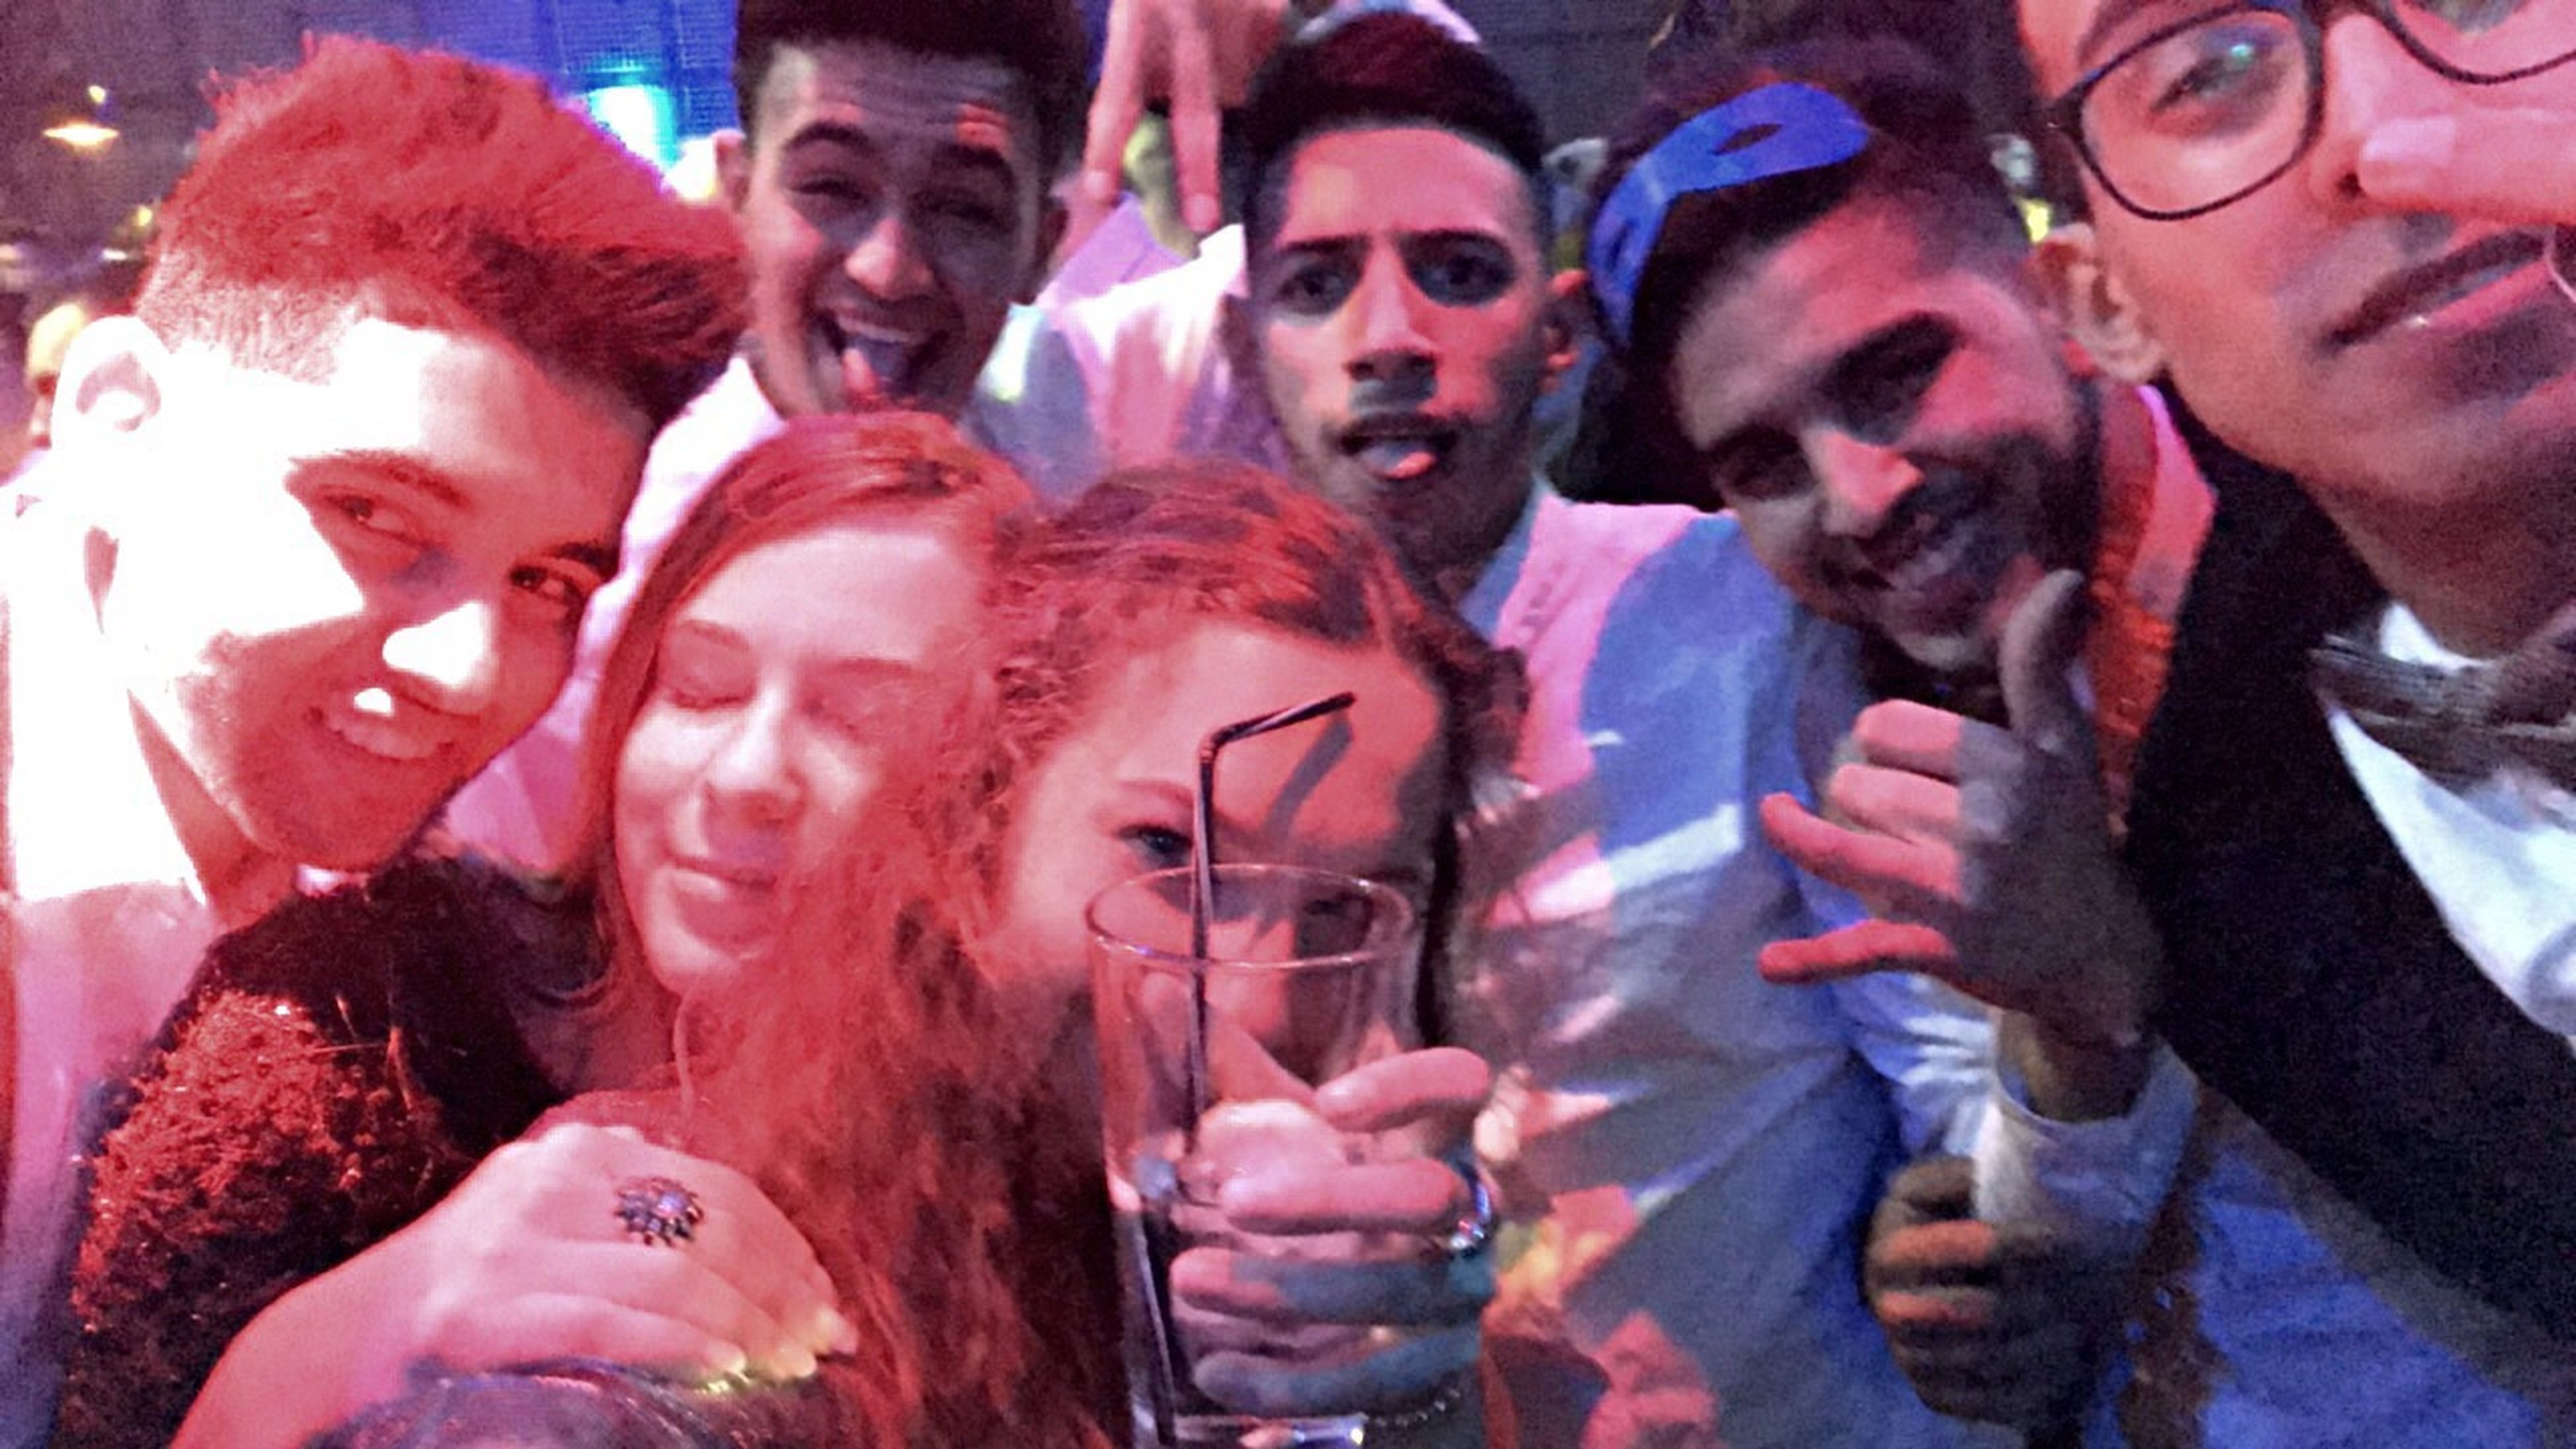 young men, fun, young adult, friendship, youth culture, party - social event, leisure activity, cheerful, celebration, men, adult, women, holi, people, nightlife, smiling, nightclub, large group of people, young women, real people, holiday - event, happiness, indoors, togetherness, adults only, day